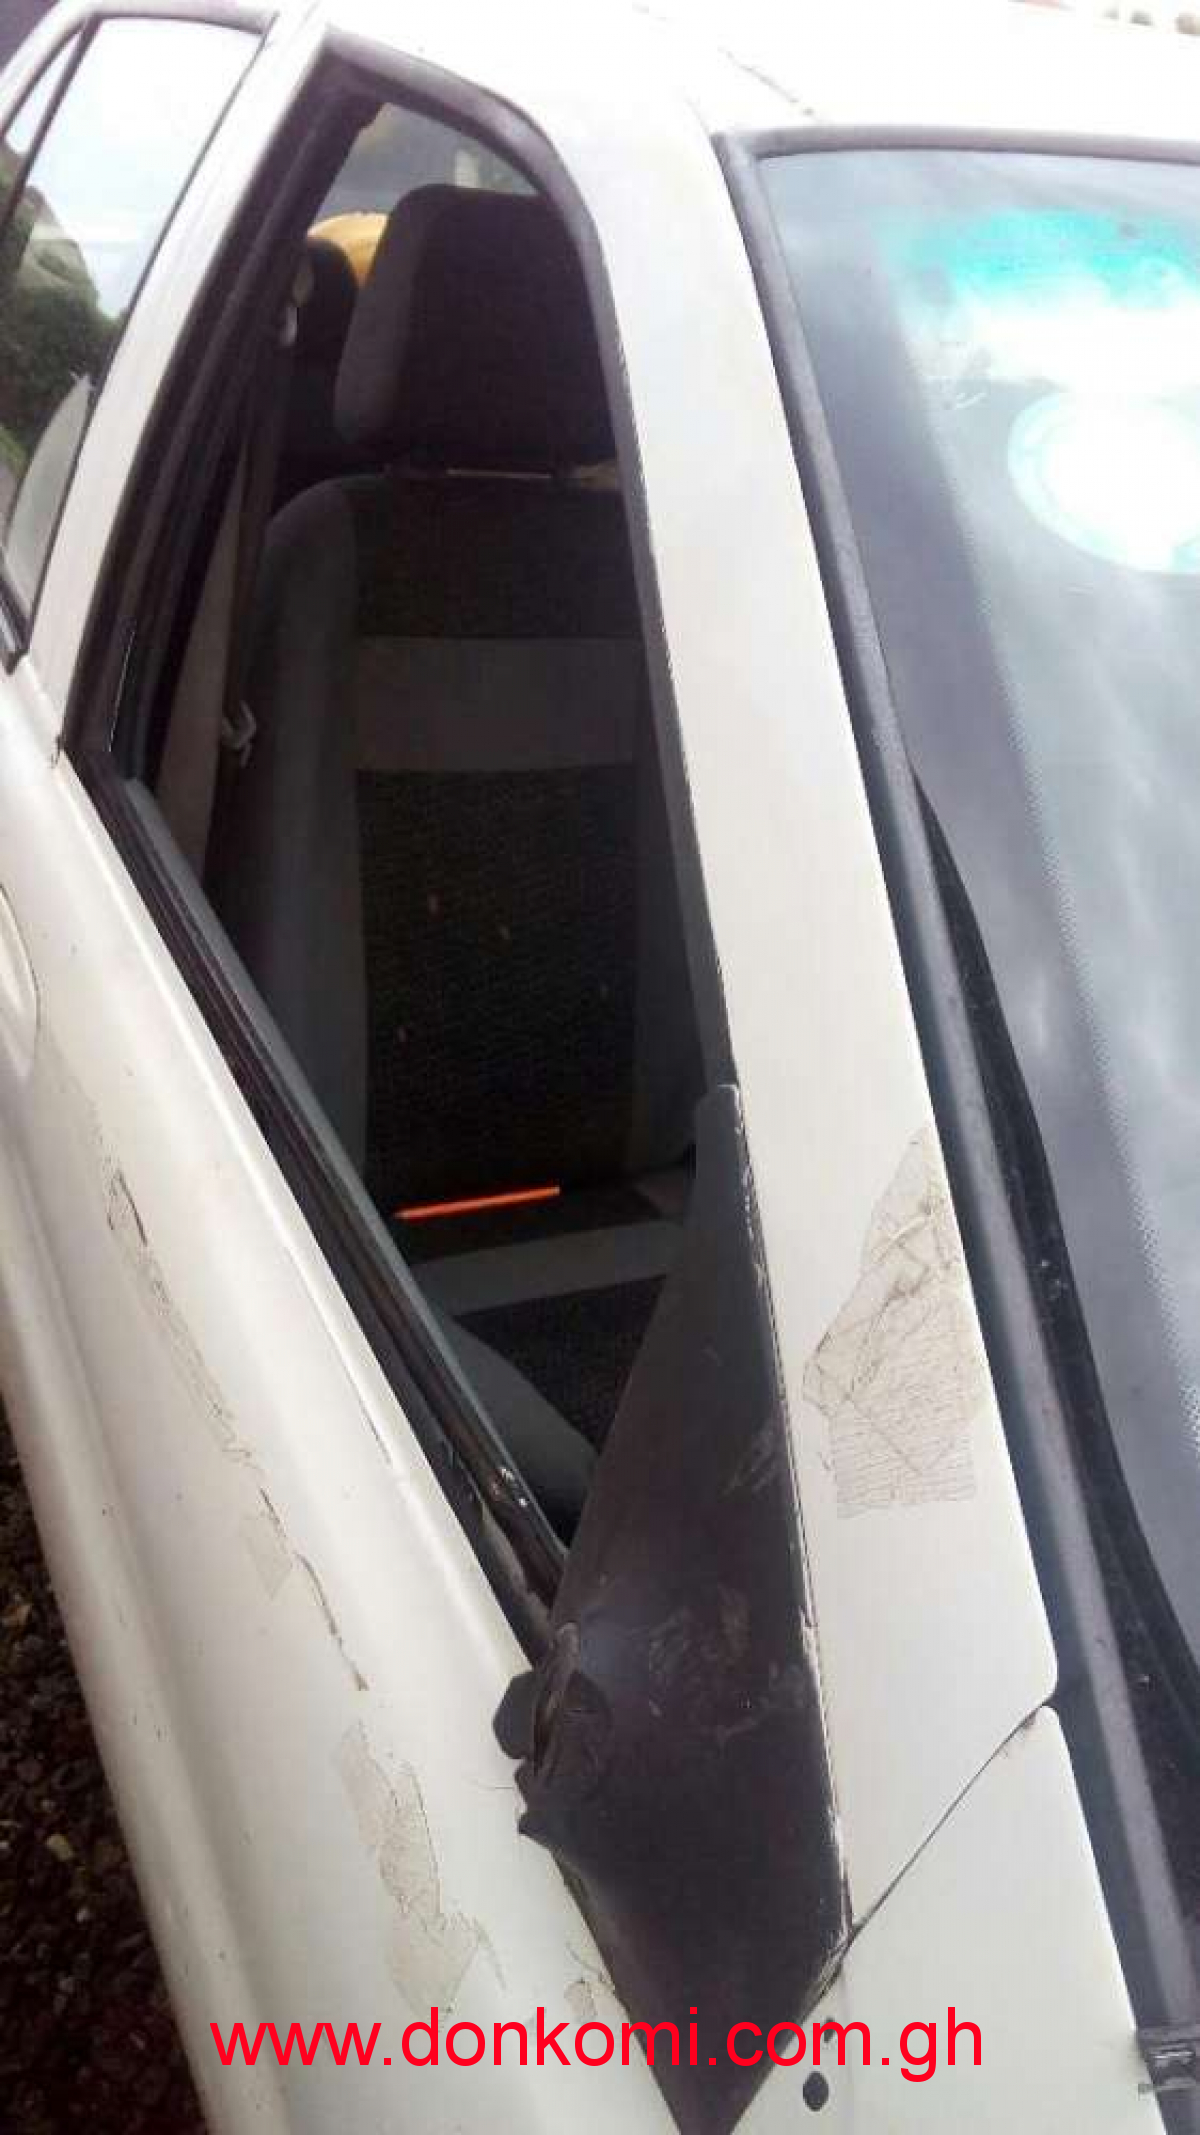 Am looking for Tata indigo front passenger side door or glass